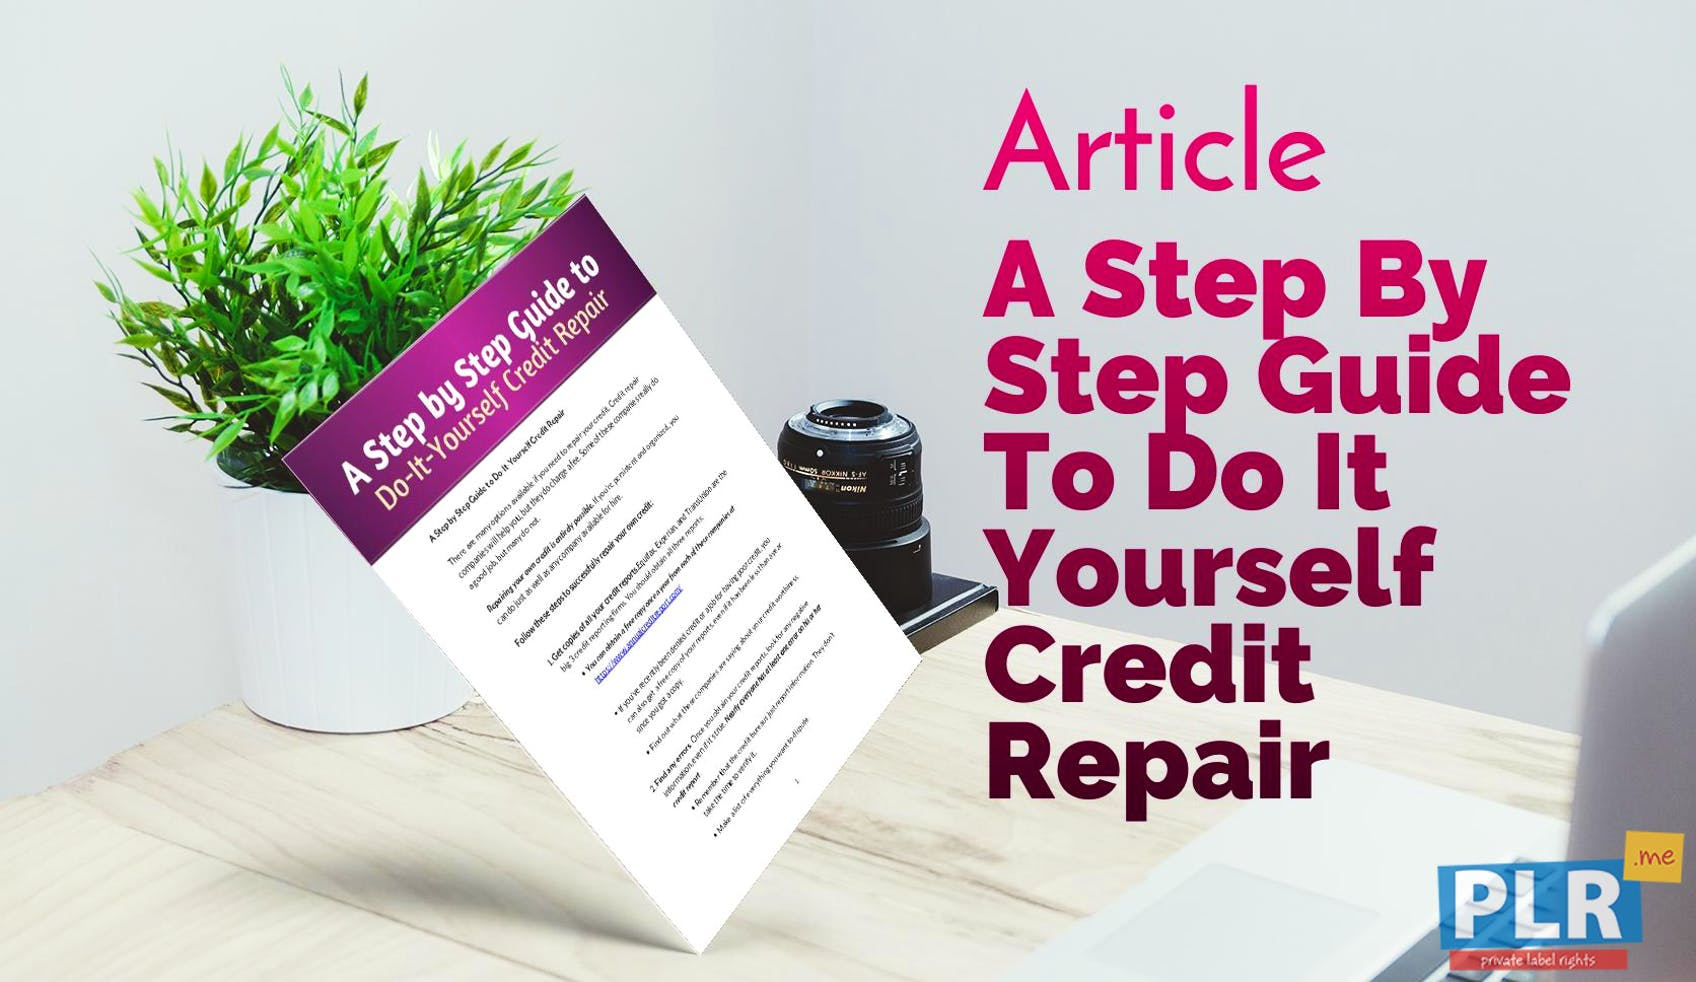 Plr articles blog posts a step by step guide to do it yourself a step by step guide to do it yourself credit repair solutioingenieria Image collections